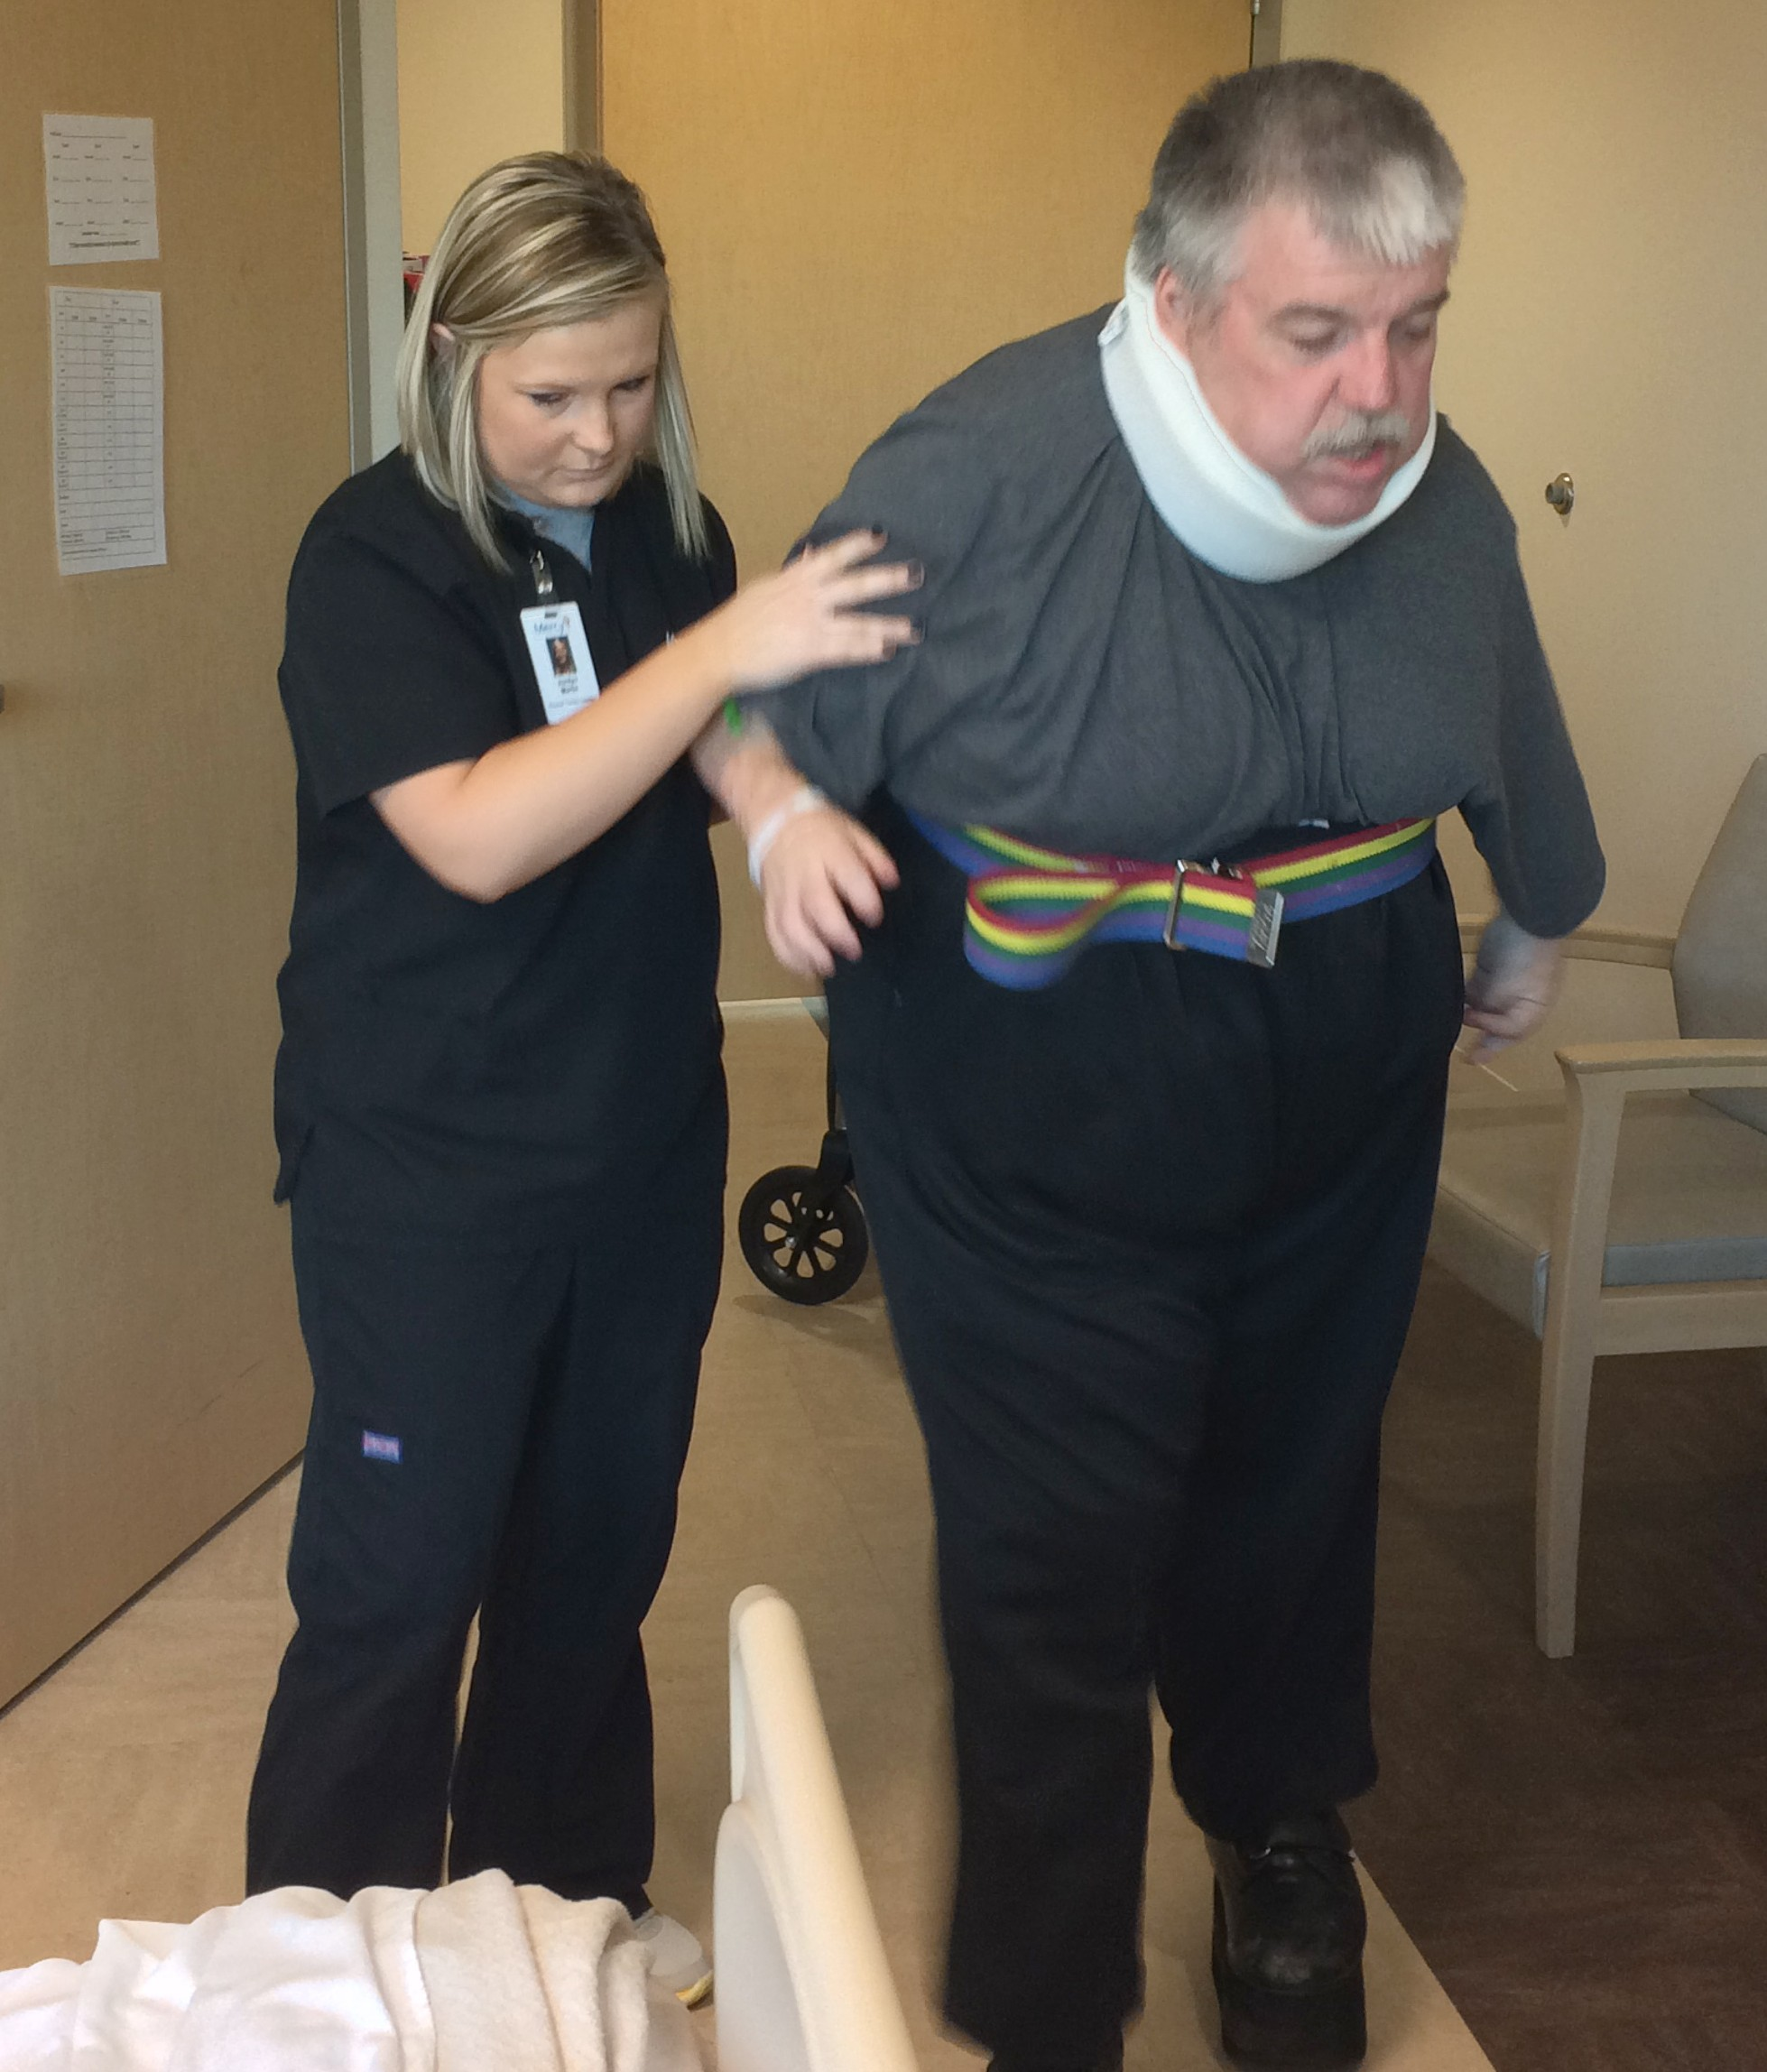 Patient Greg Redfern walks again after a stay at Mercy Rehabilitation Hospital Springfield. Mercy's three dedicated rehabilitation hospitals all rank in the top 10 percent for how well their patients recover from serious illness or injury.